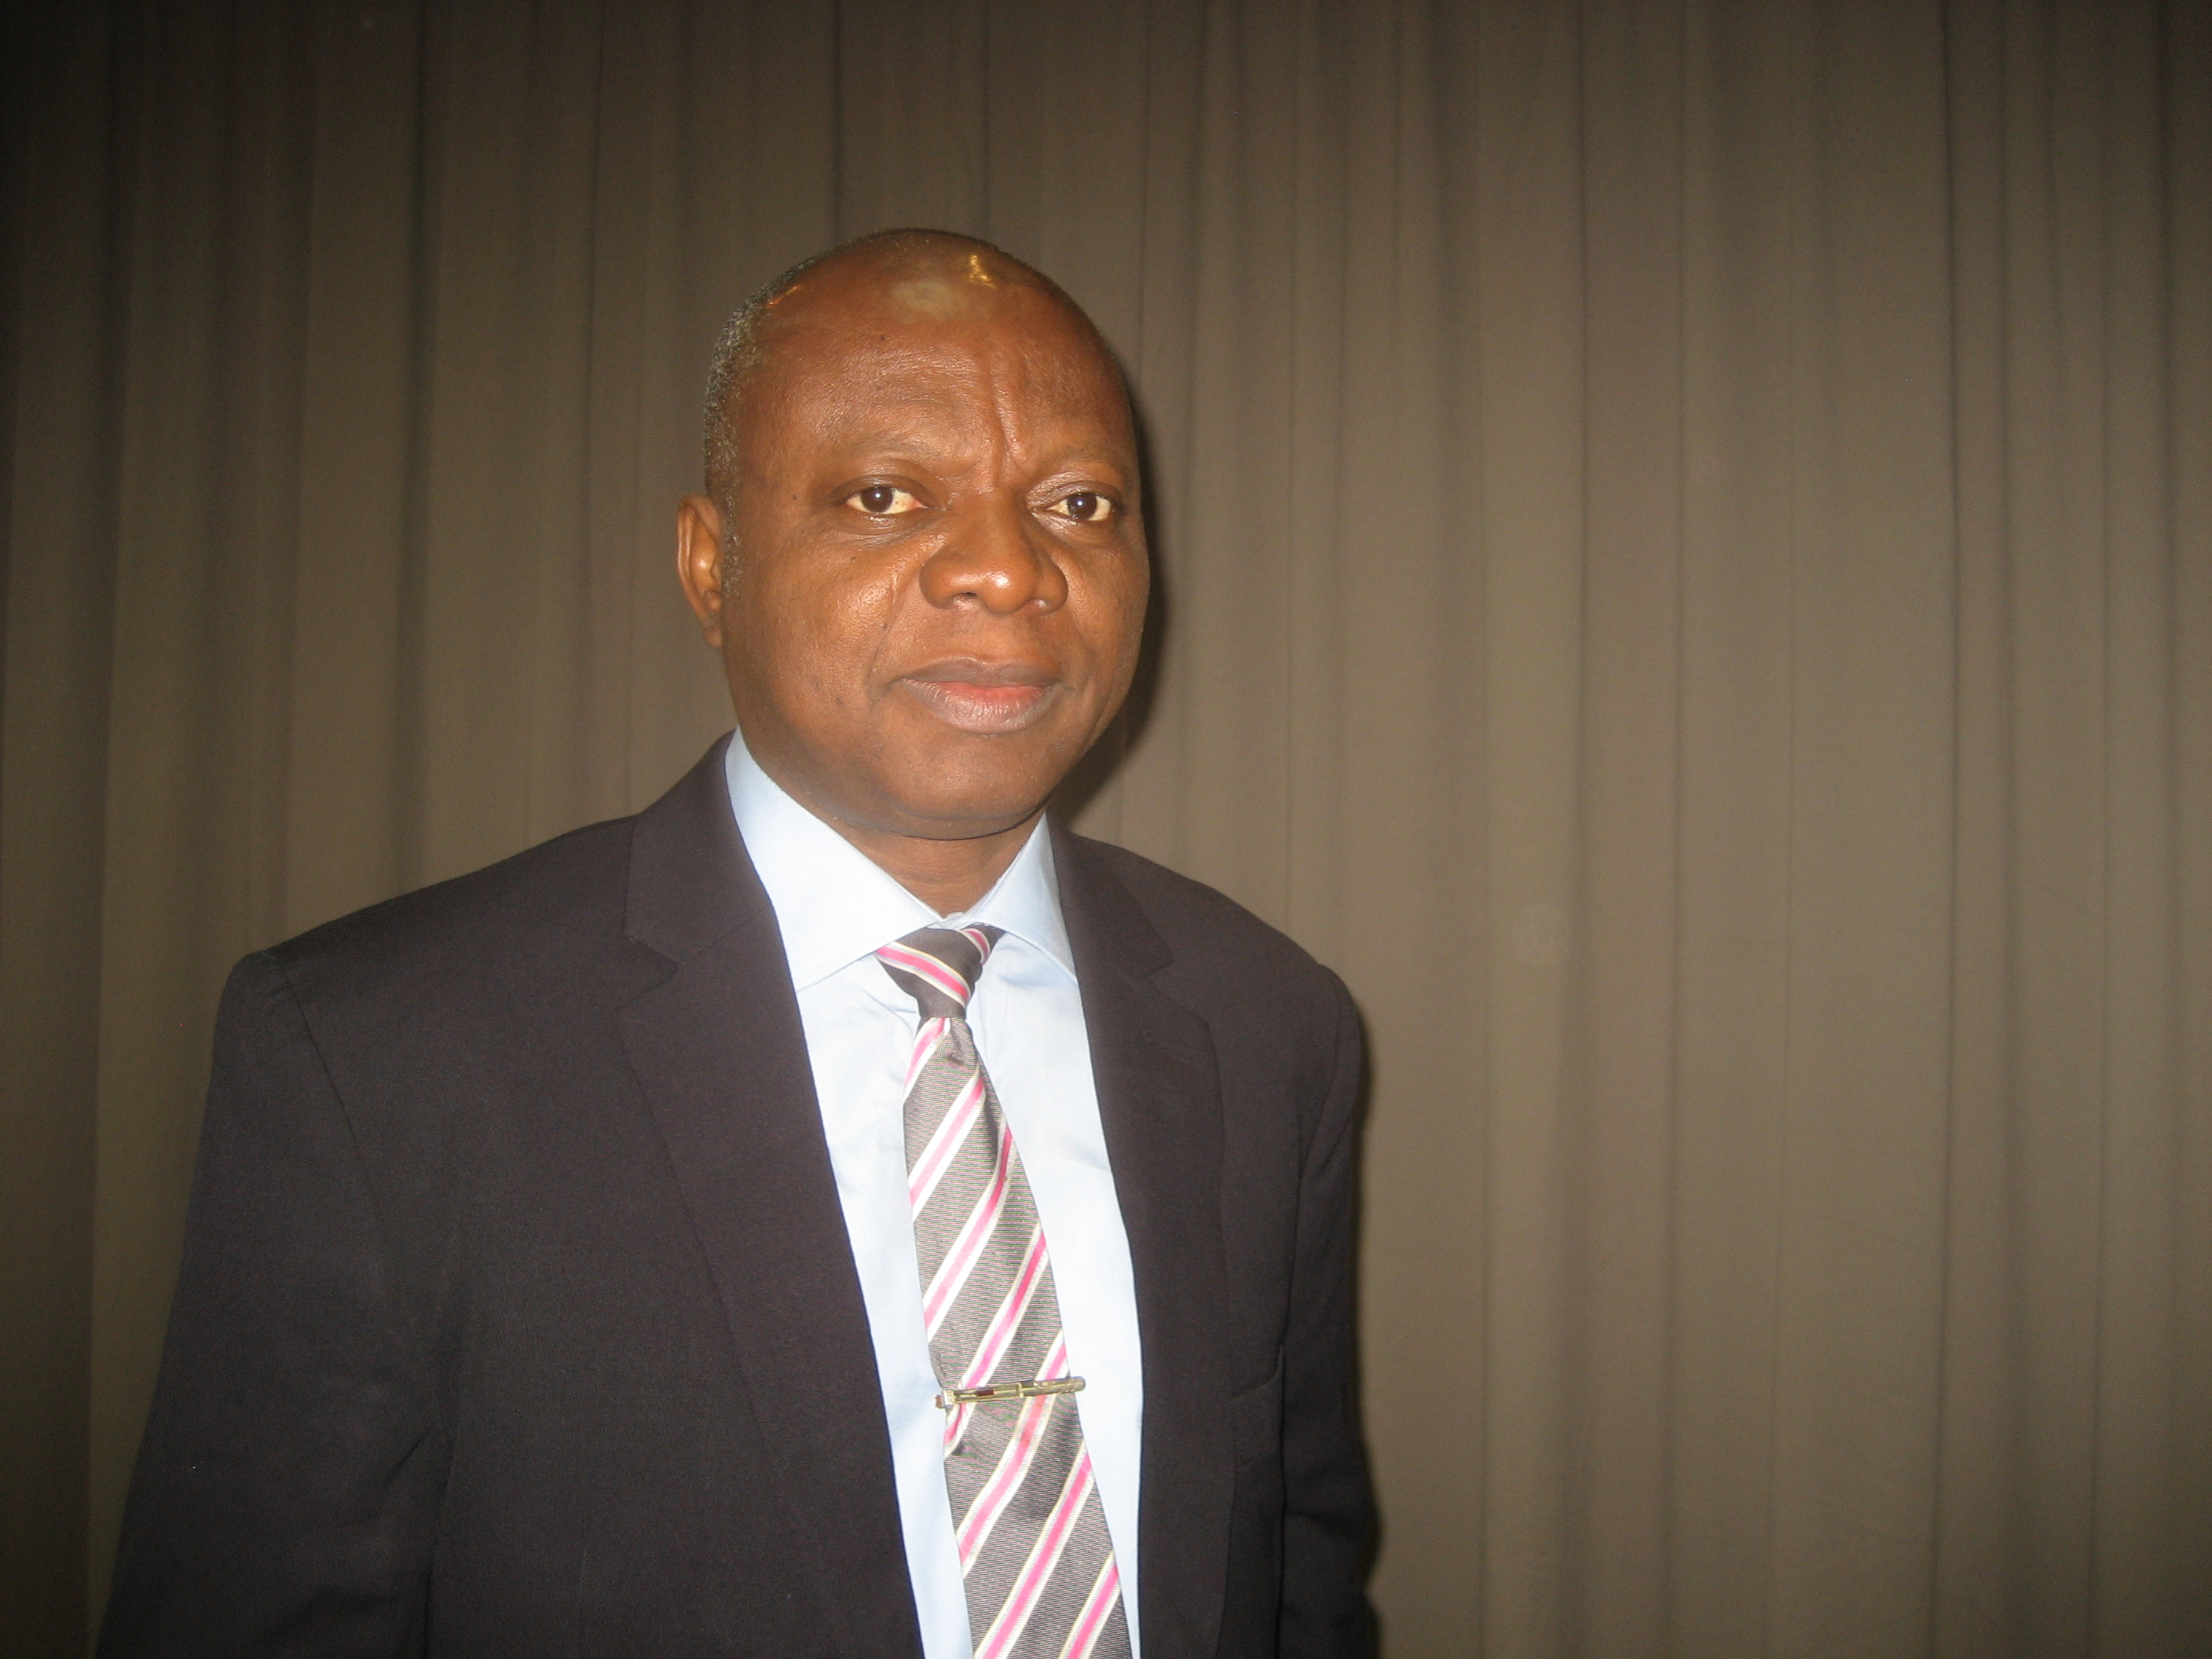 Prof. Idowu Olayinka, Vice Chancellor, University of Ibadan. Photo: Wikipedia